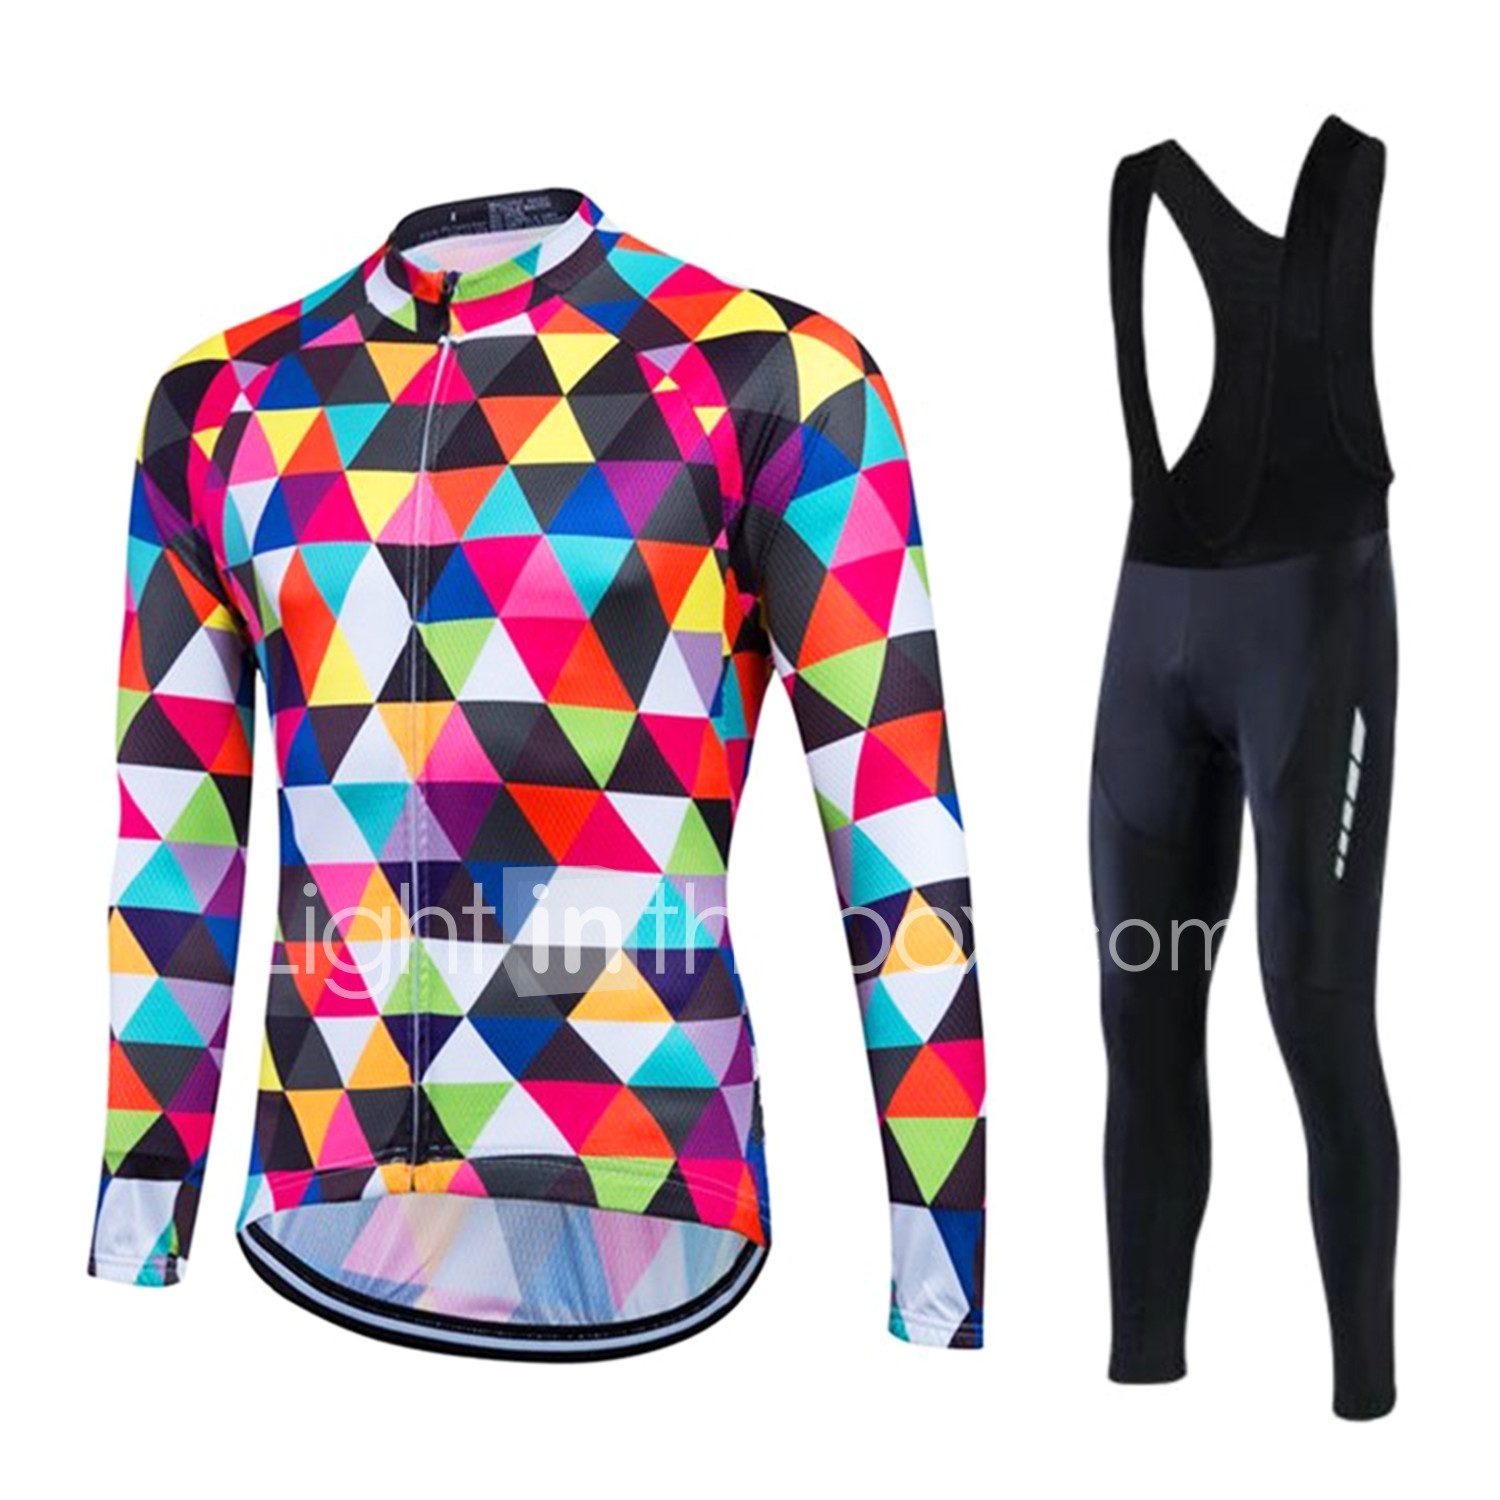 e2b30cad5 Fastcute Men s Long Sleeve Cycling Jersey with Bib Tights - White ...